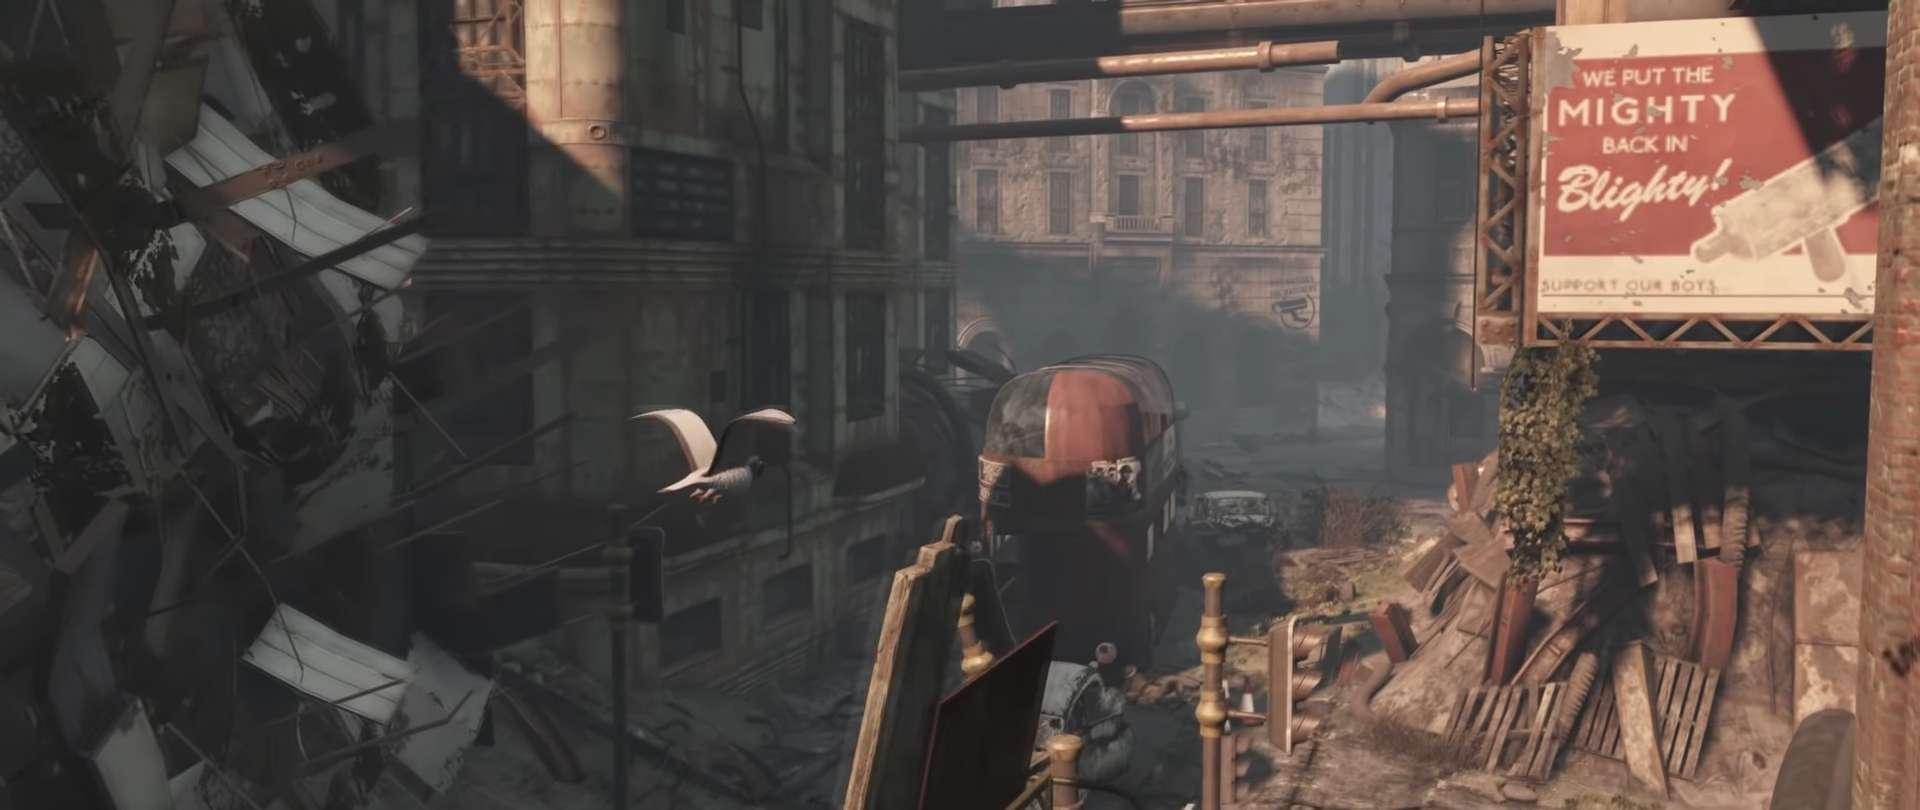 Fallout: London Looks Like One Of The Most Impressive Fallout Mods To Date